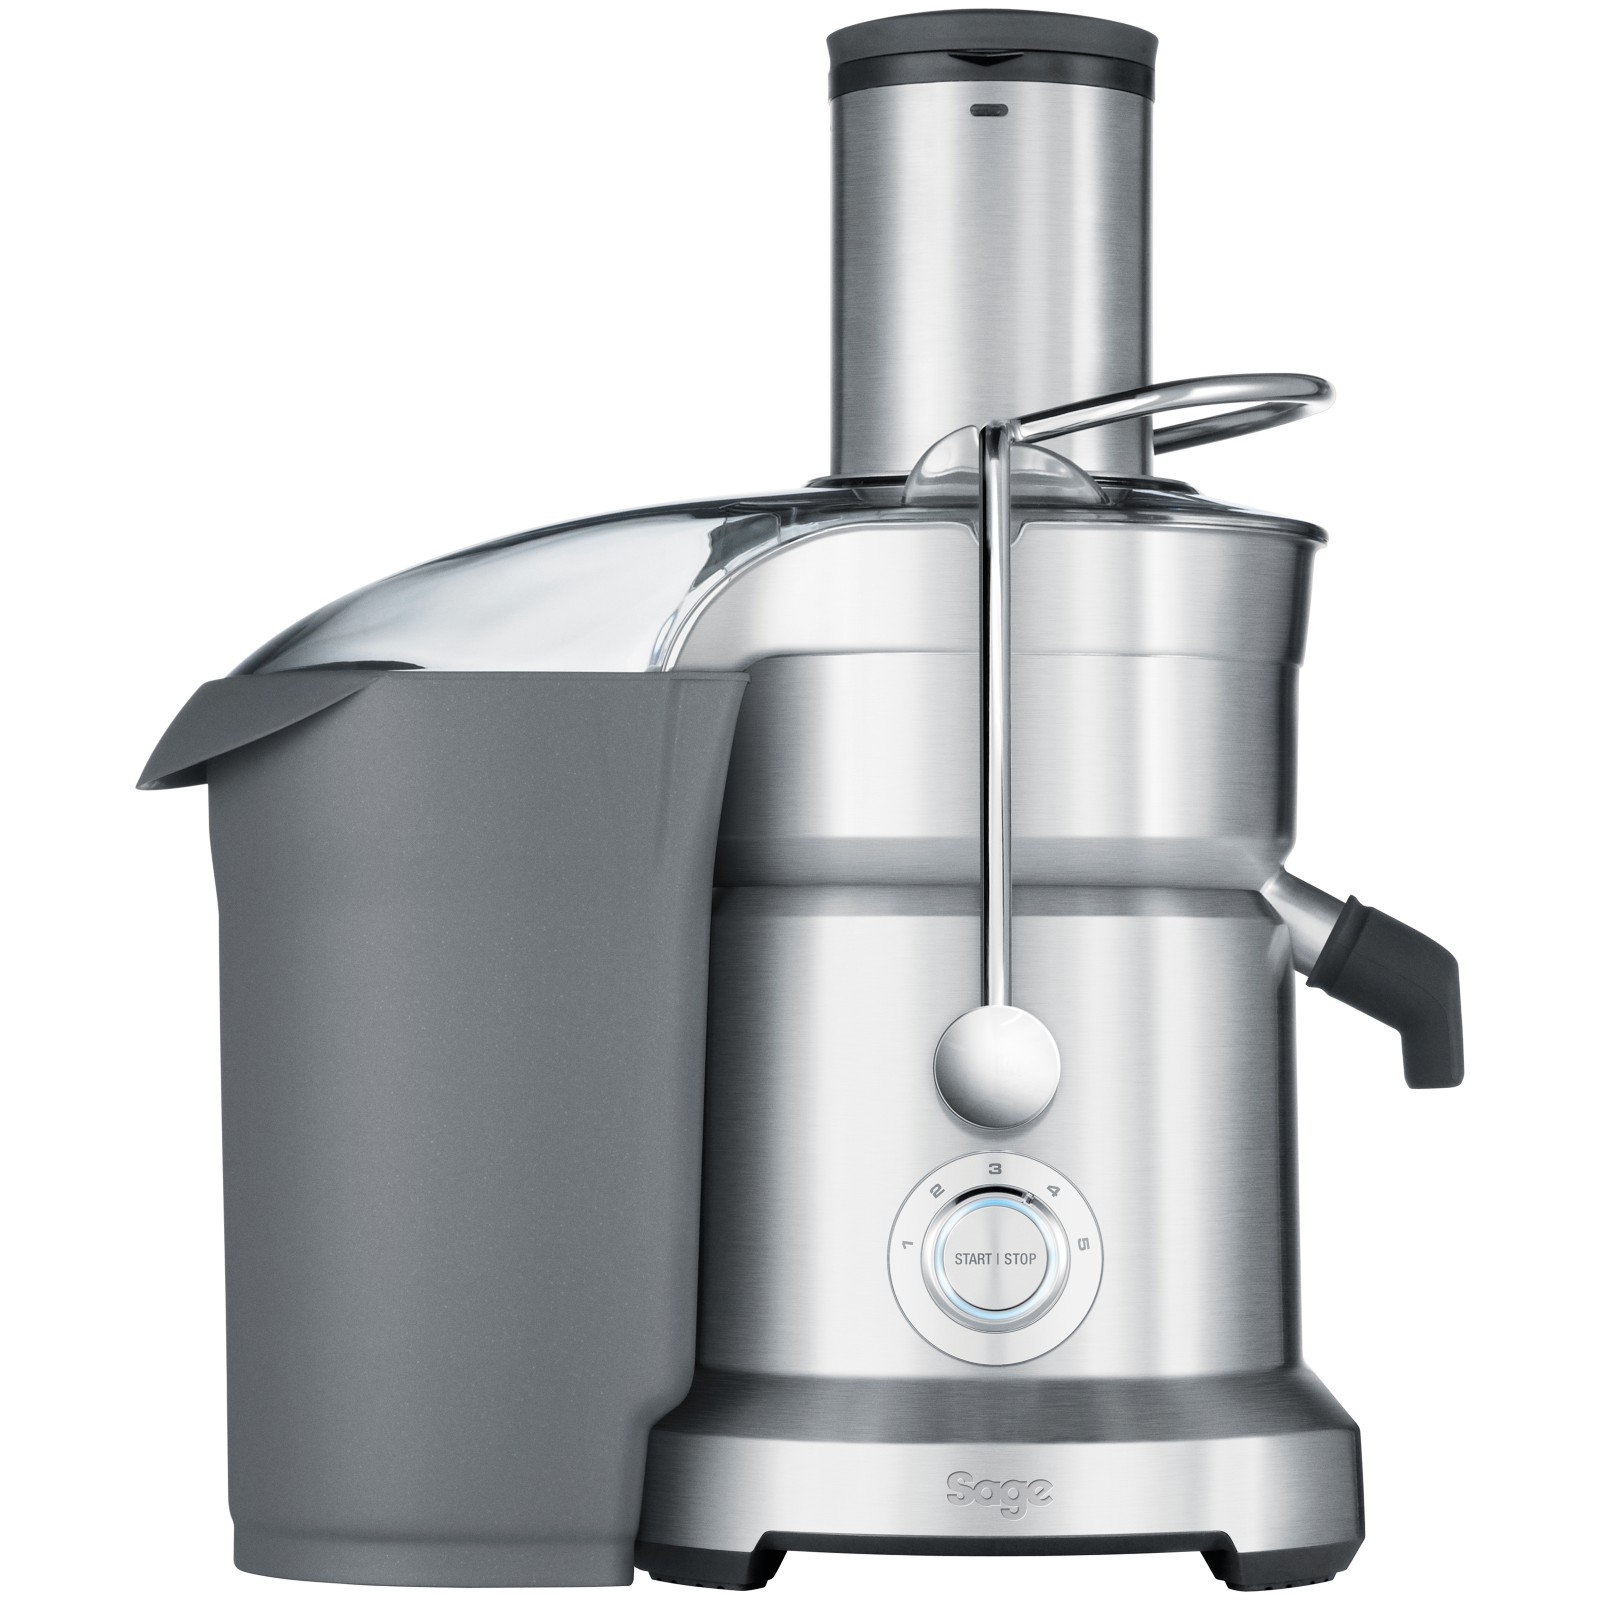 Sage by Heston Blumenthal the Nutri Juicer Pro